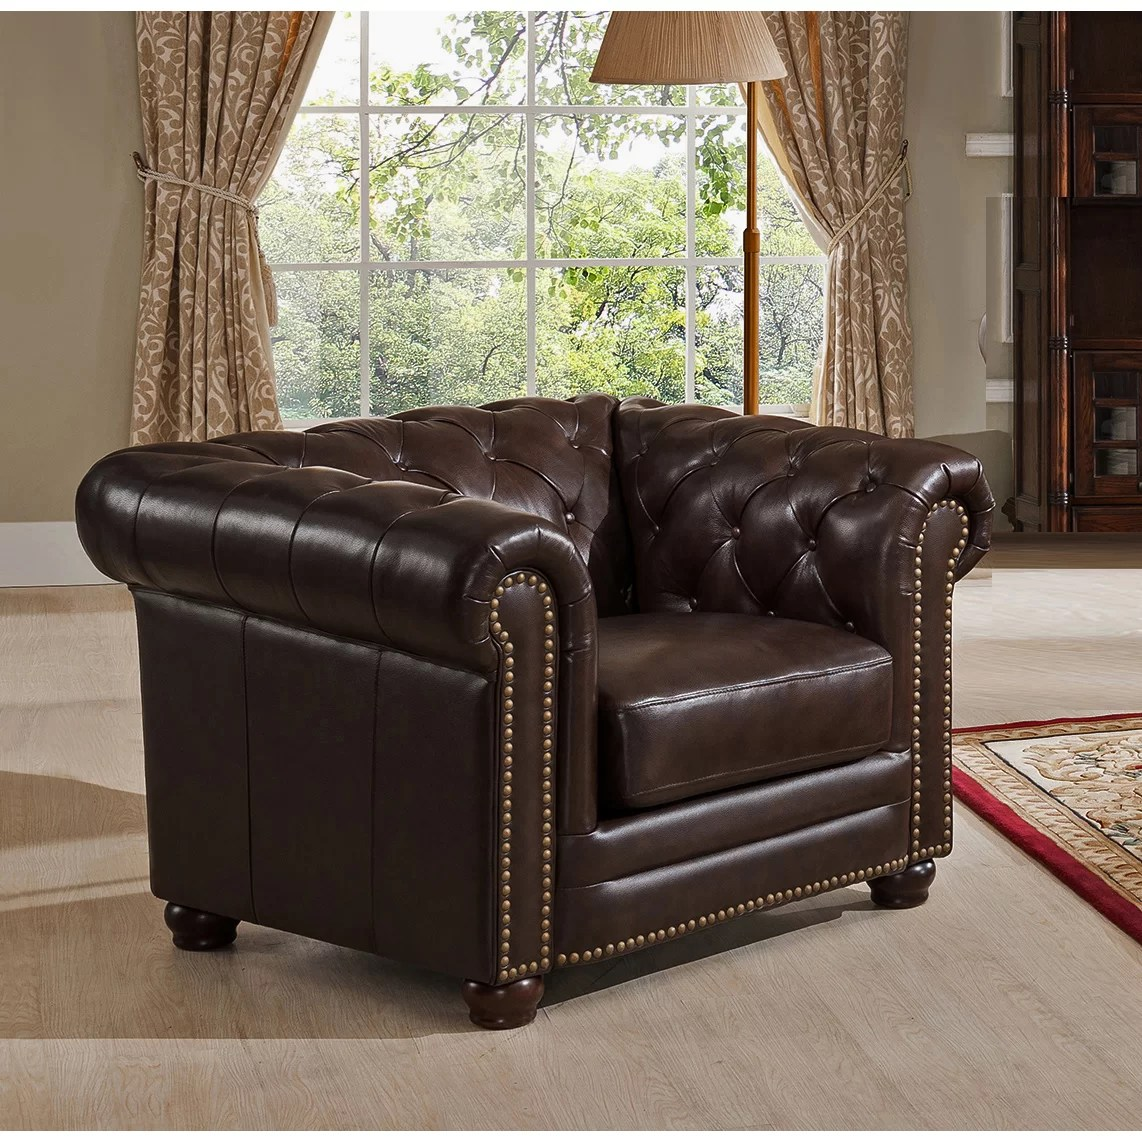 Leather Chesterfield Chair Amax Kensington Top Grain Leather Chesterfield Sofa And